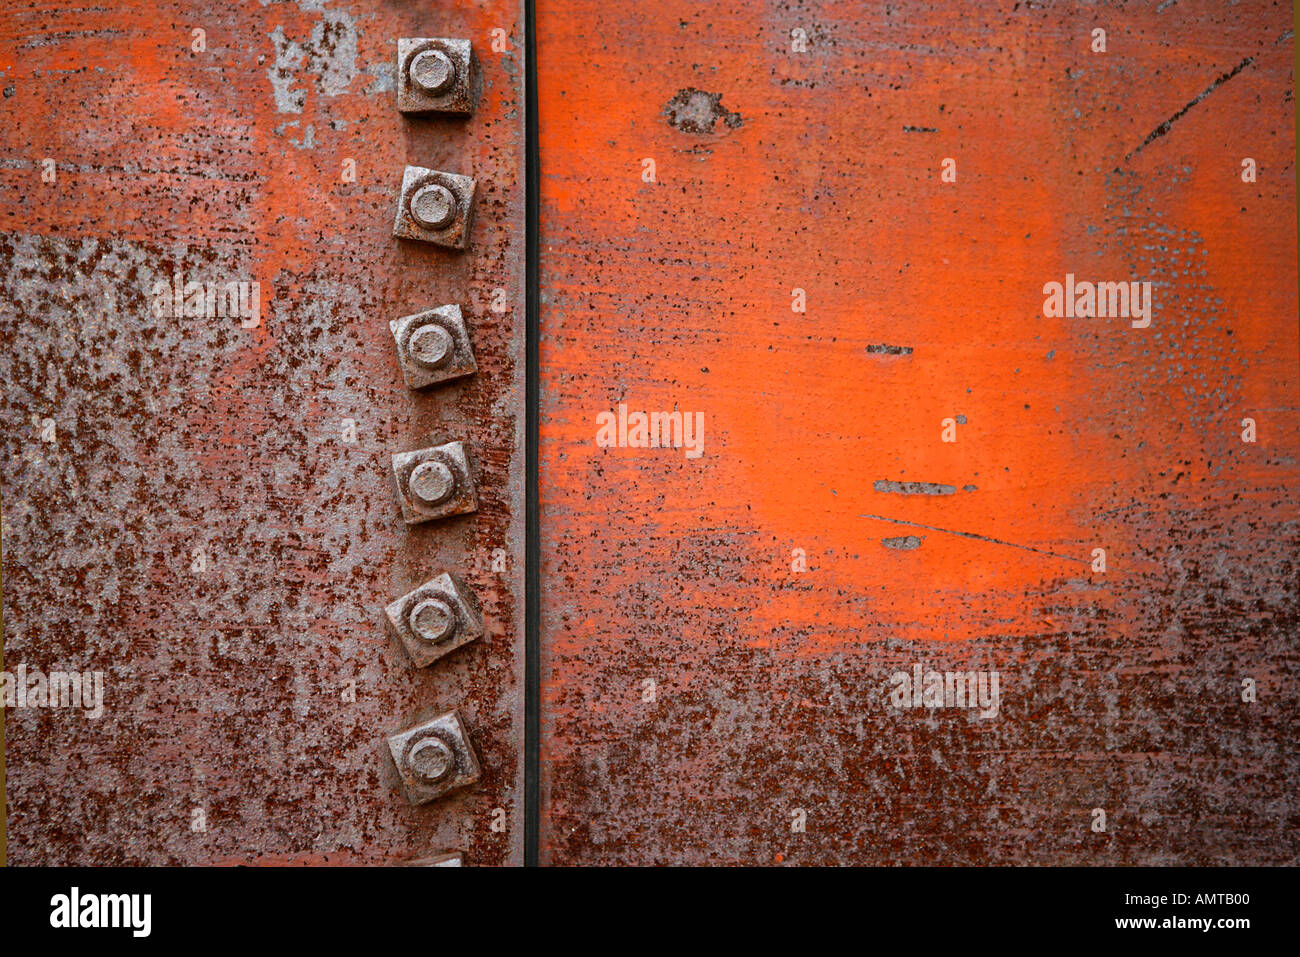 A close up of a seam on an old water tank showing the rust and fastening nuts - Stock Image